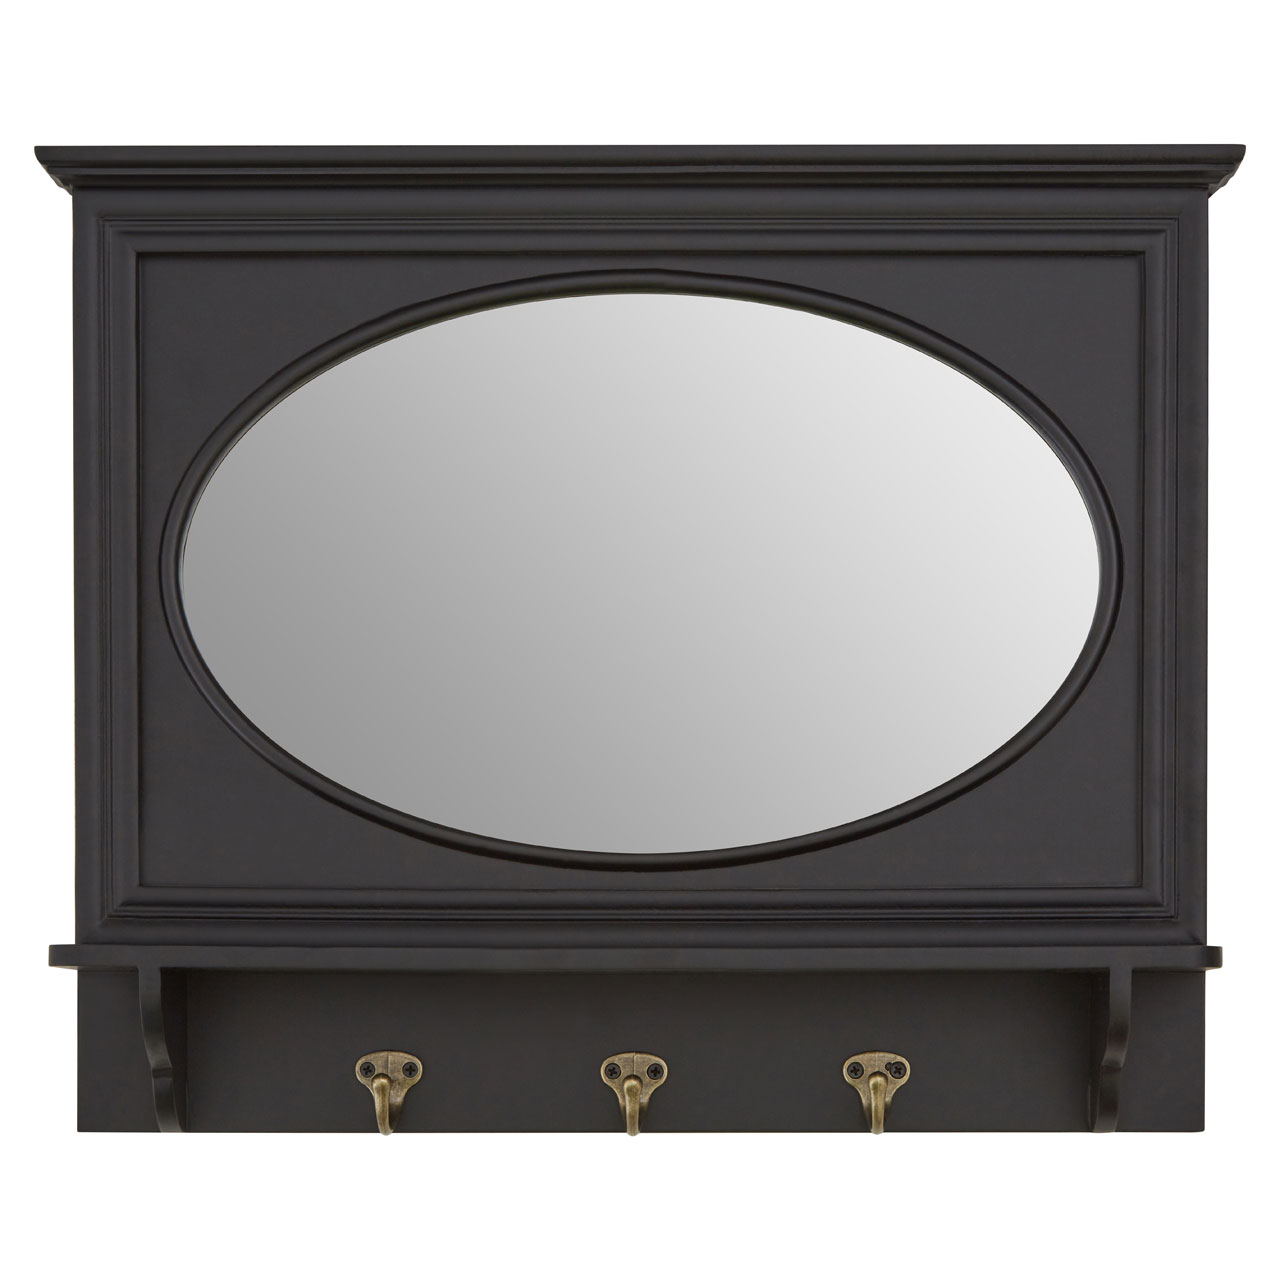 Premier Whitley Entryway Wall Mirror, 3 Hooks, Black Frame Oval ...